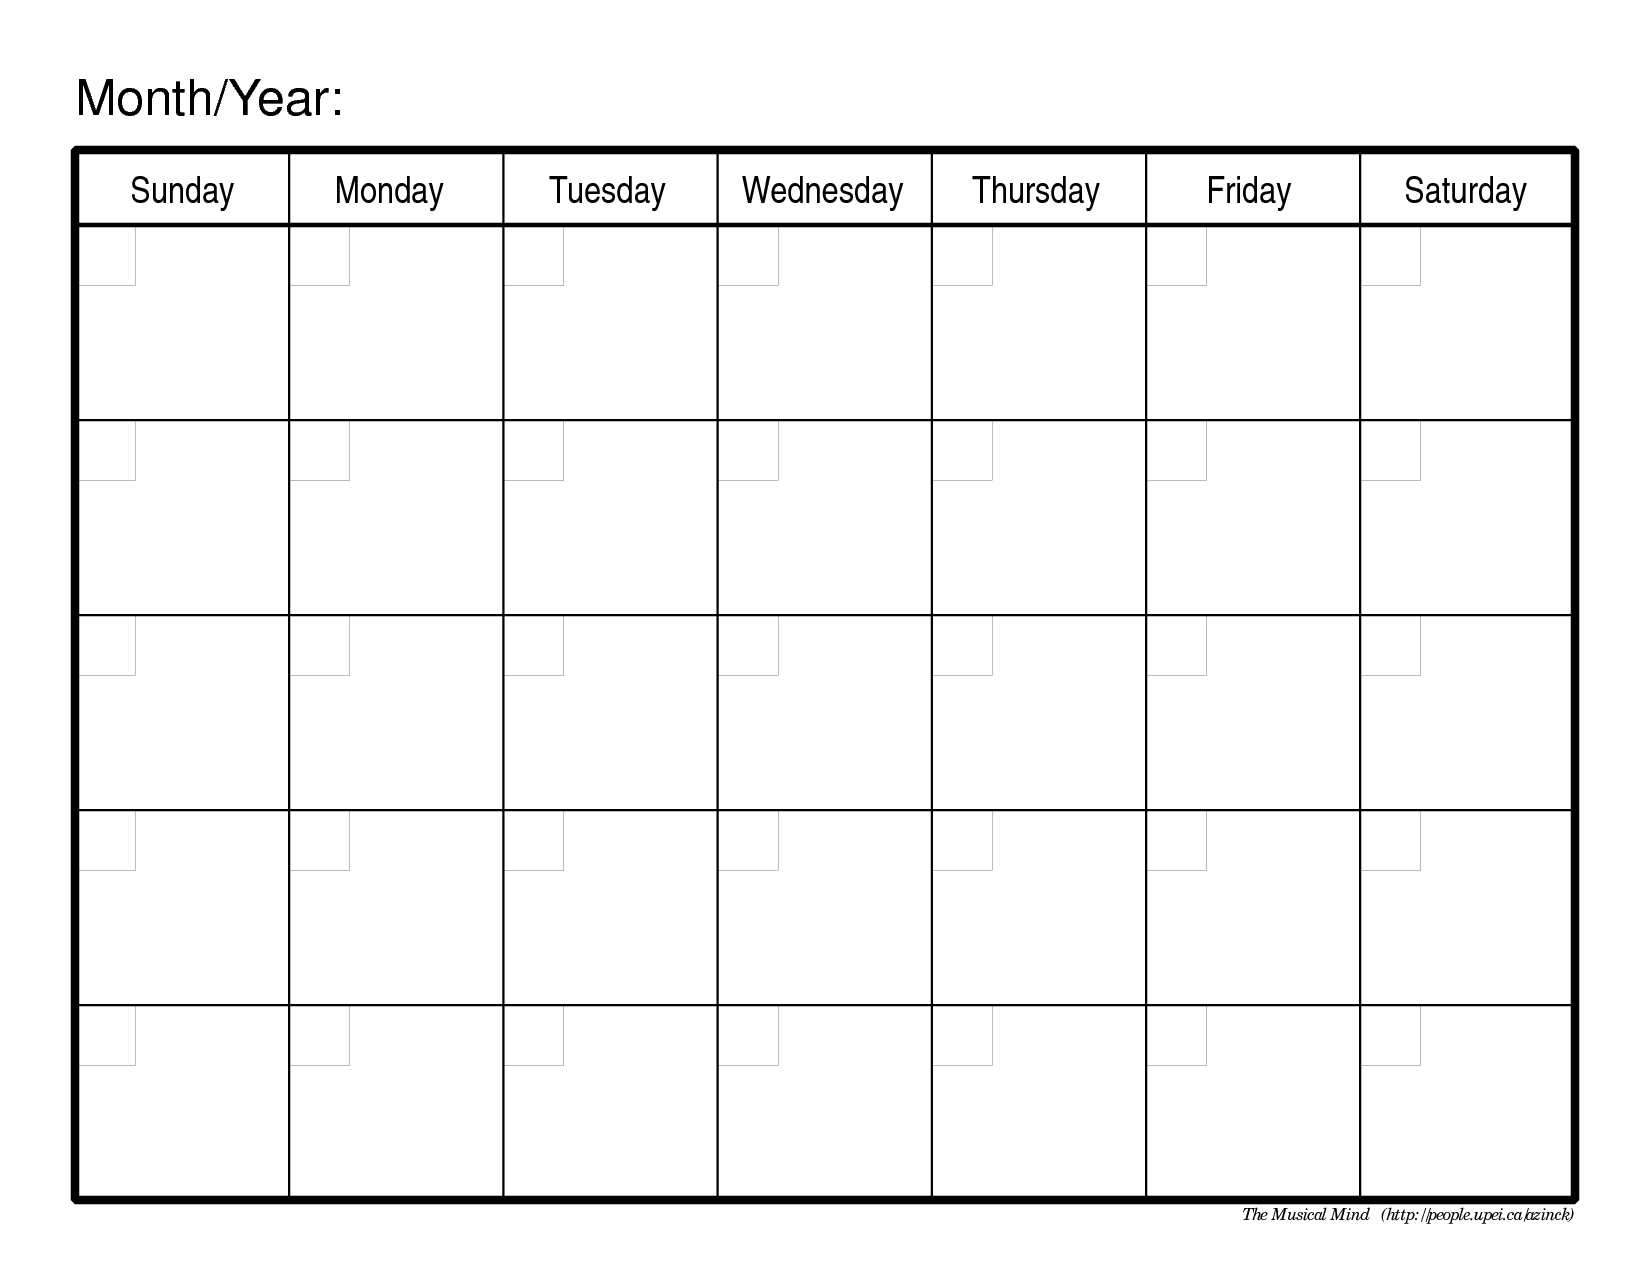 Free Printable Calendar - For My Running Schedule?? (With